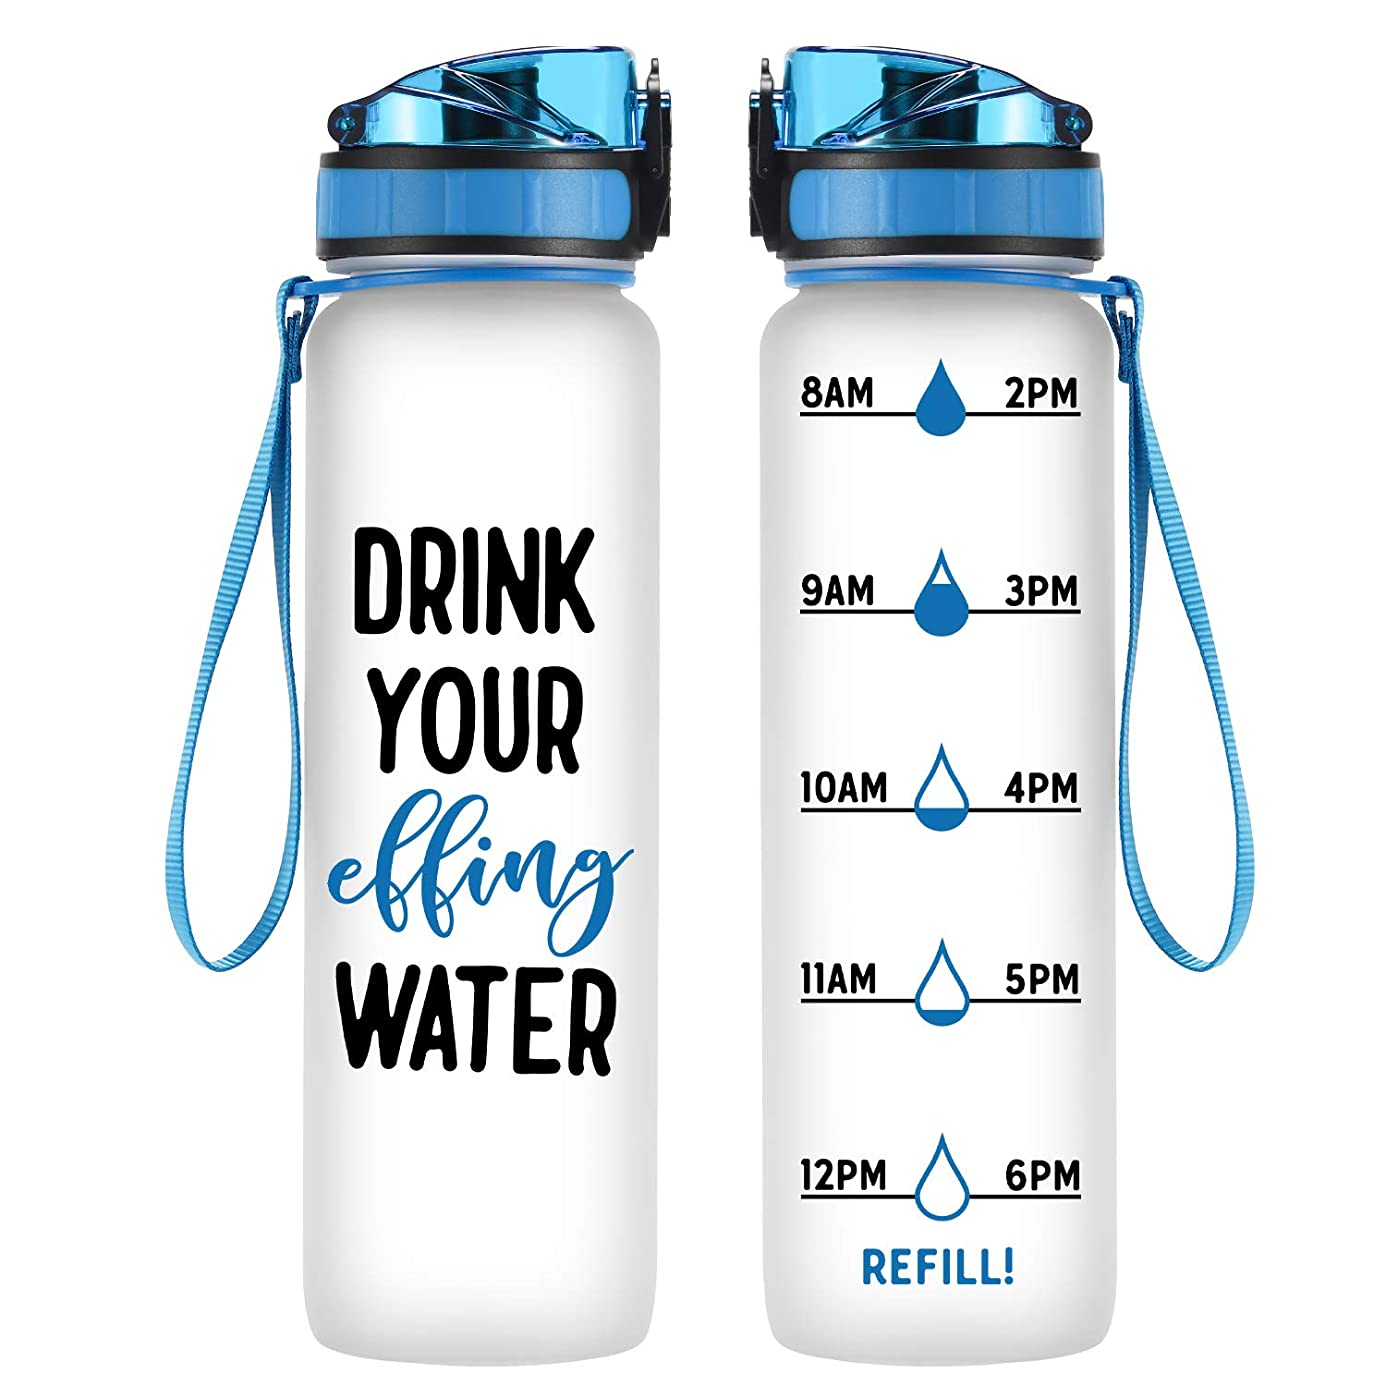 Coolife 32 oz 1 Liter Motivational Tracking Water Bottle with Hourly Time Marker | Drink Your Effing Water | Funny Birthday Gifts for Women, Men, Mom, Dad, Best Friends, Coworkers | Drink More Water